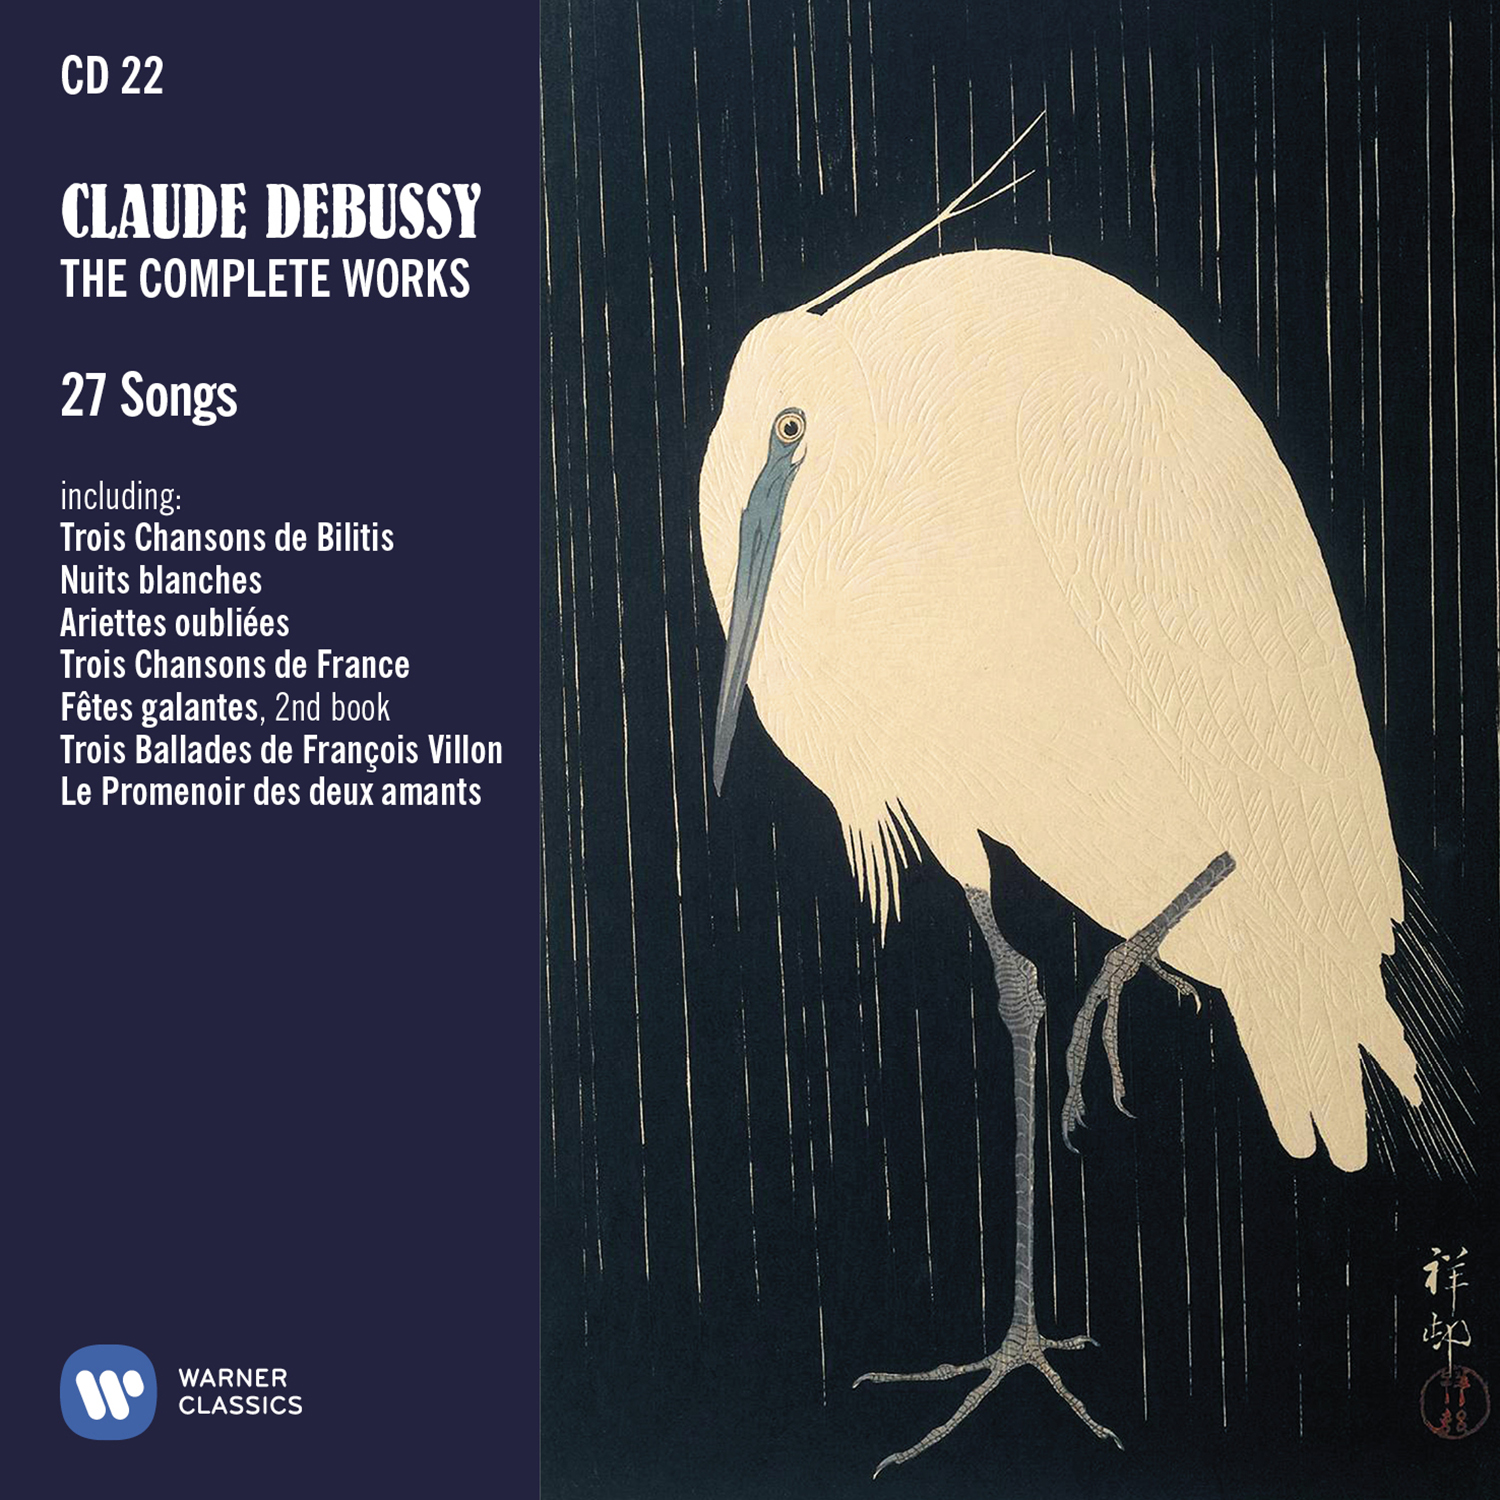 Debussy The complete works - Cover wallet CD22.jpg